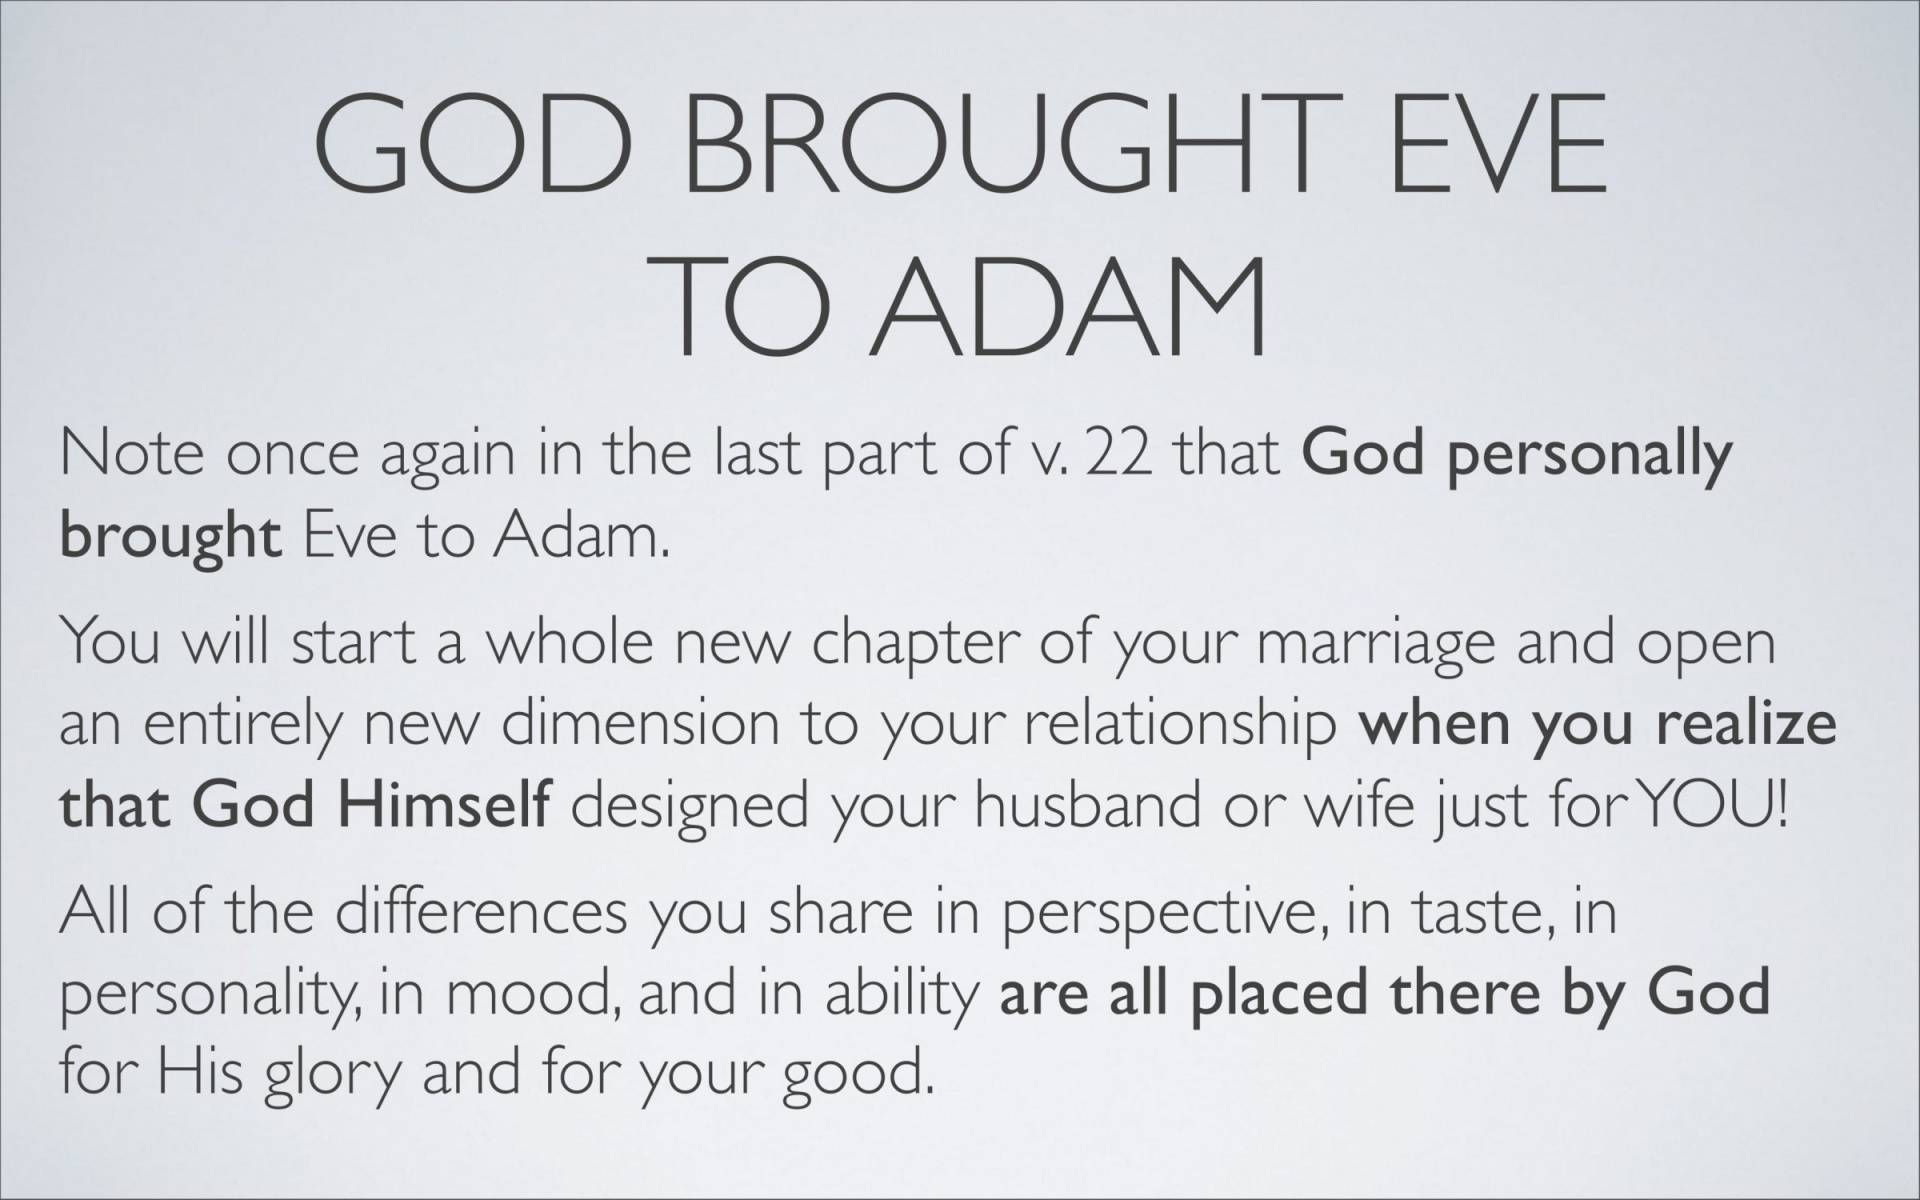 BC&D-37 - Lesson 15-1 - The Marriage Relationship - Husbands-15